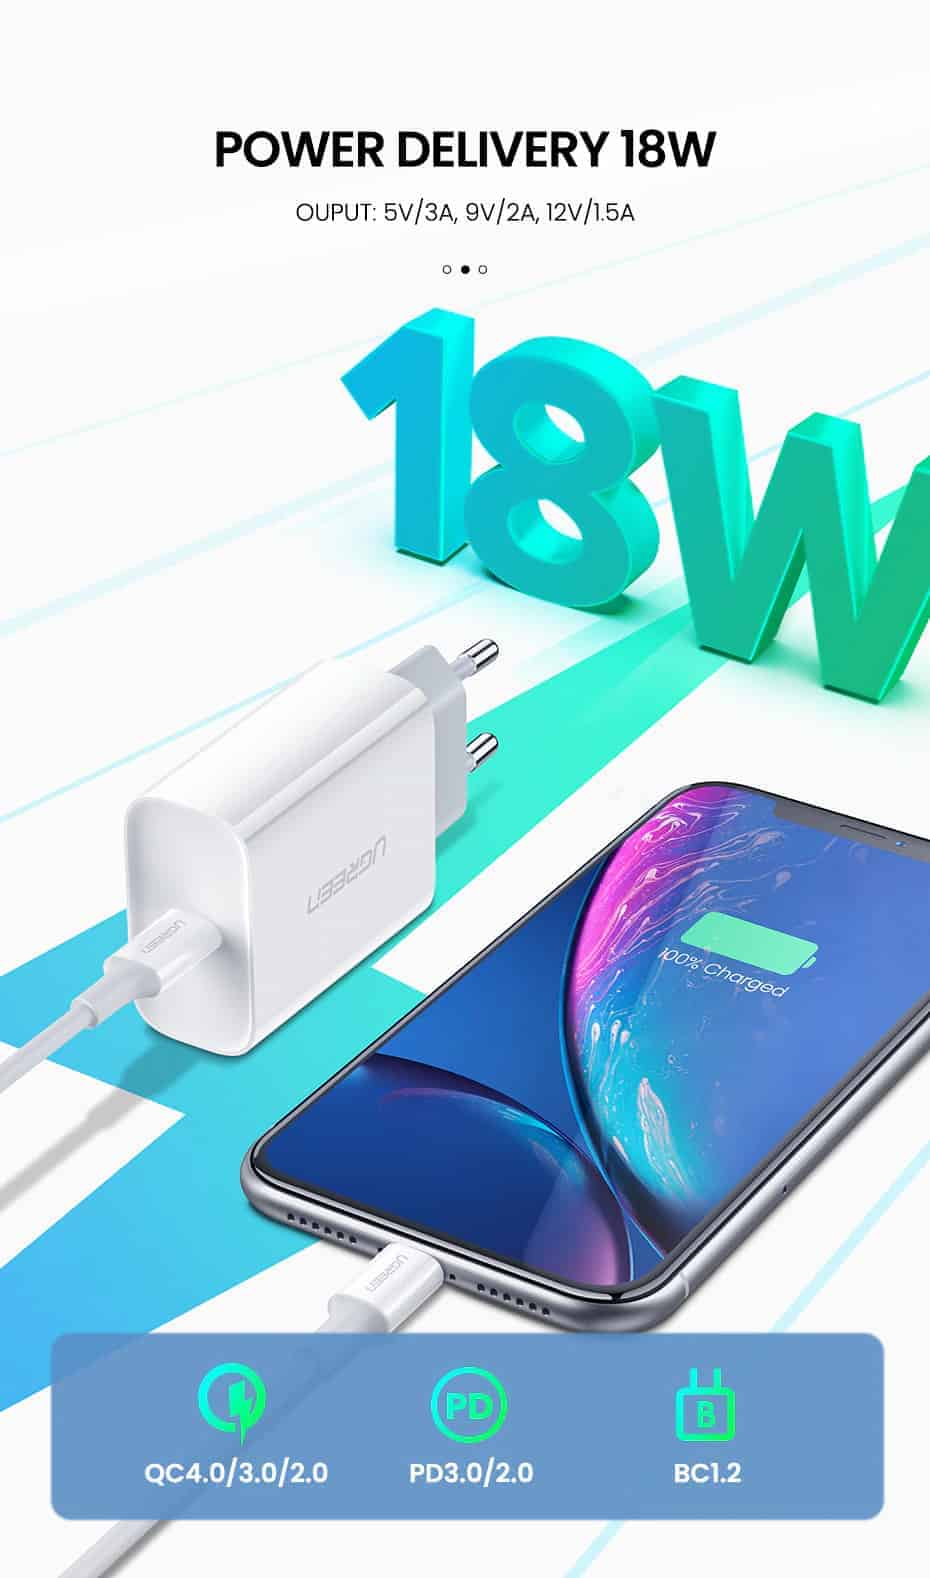 18W USB-C Power Adapter Ugreen for iPhone 11 11 PRo X Xs 8 - Compatible with quick 4.0 3.0 2.0